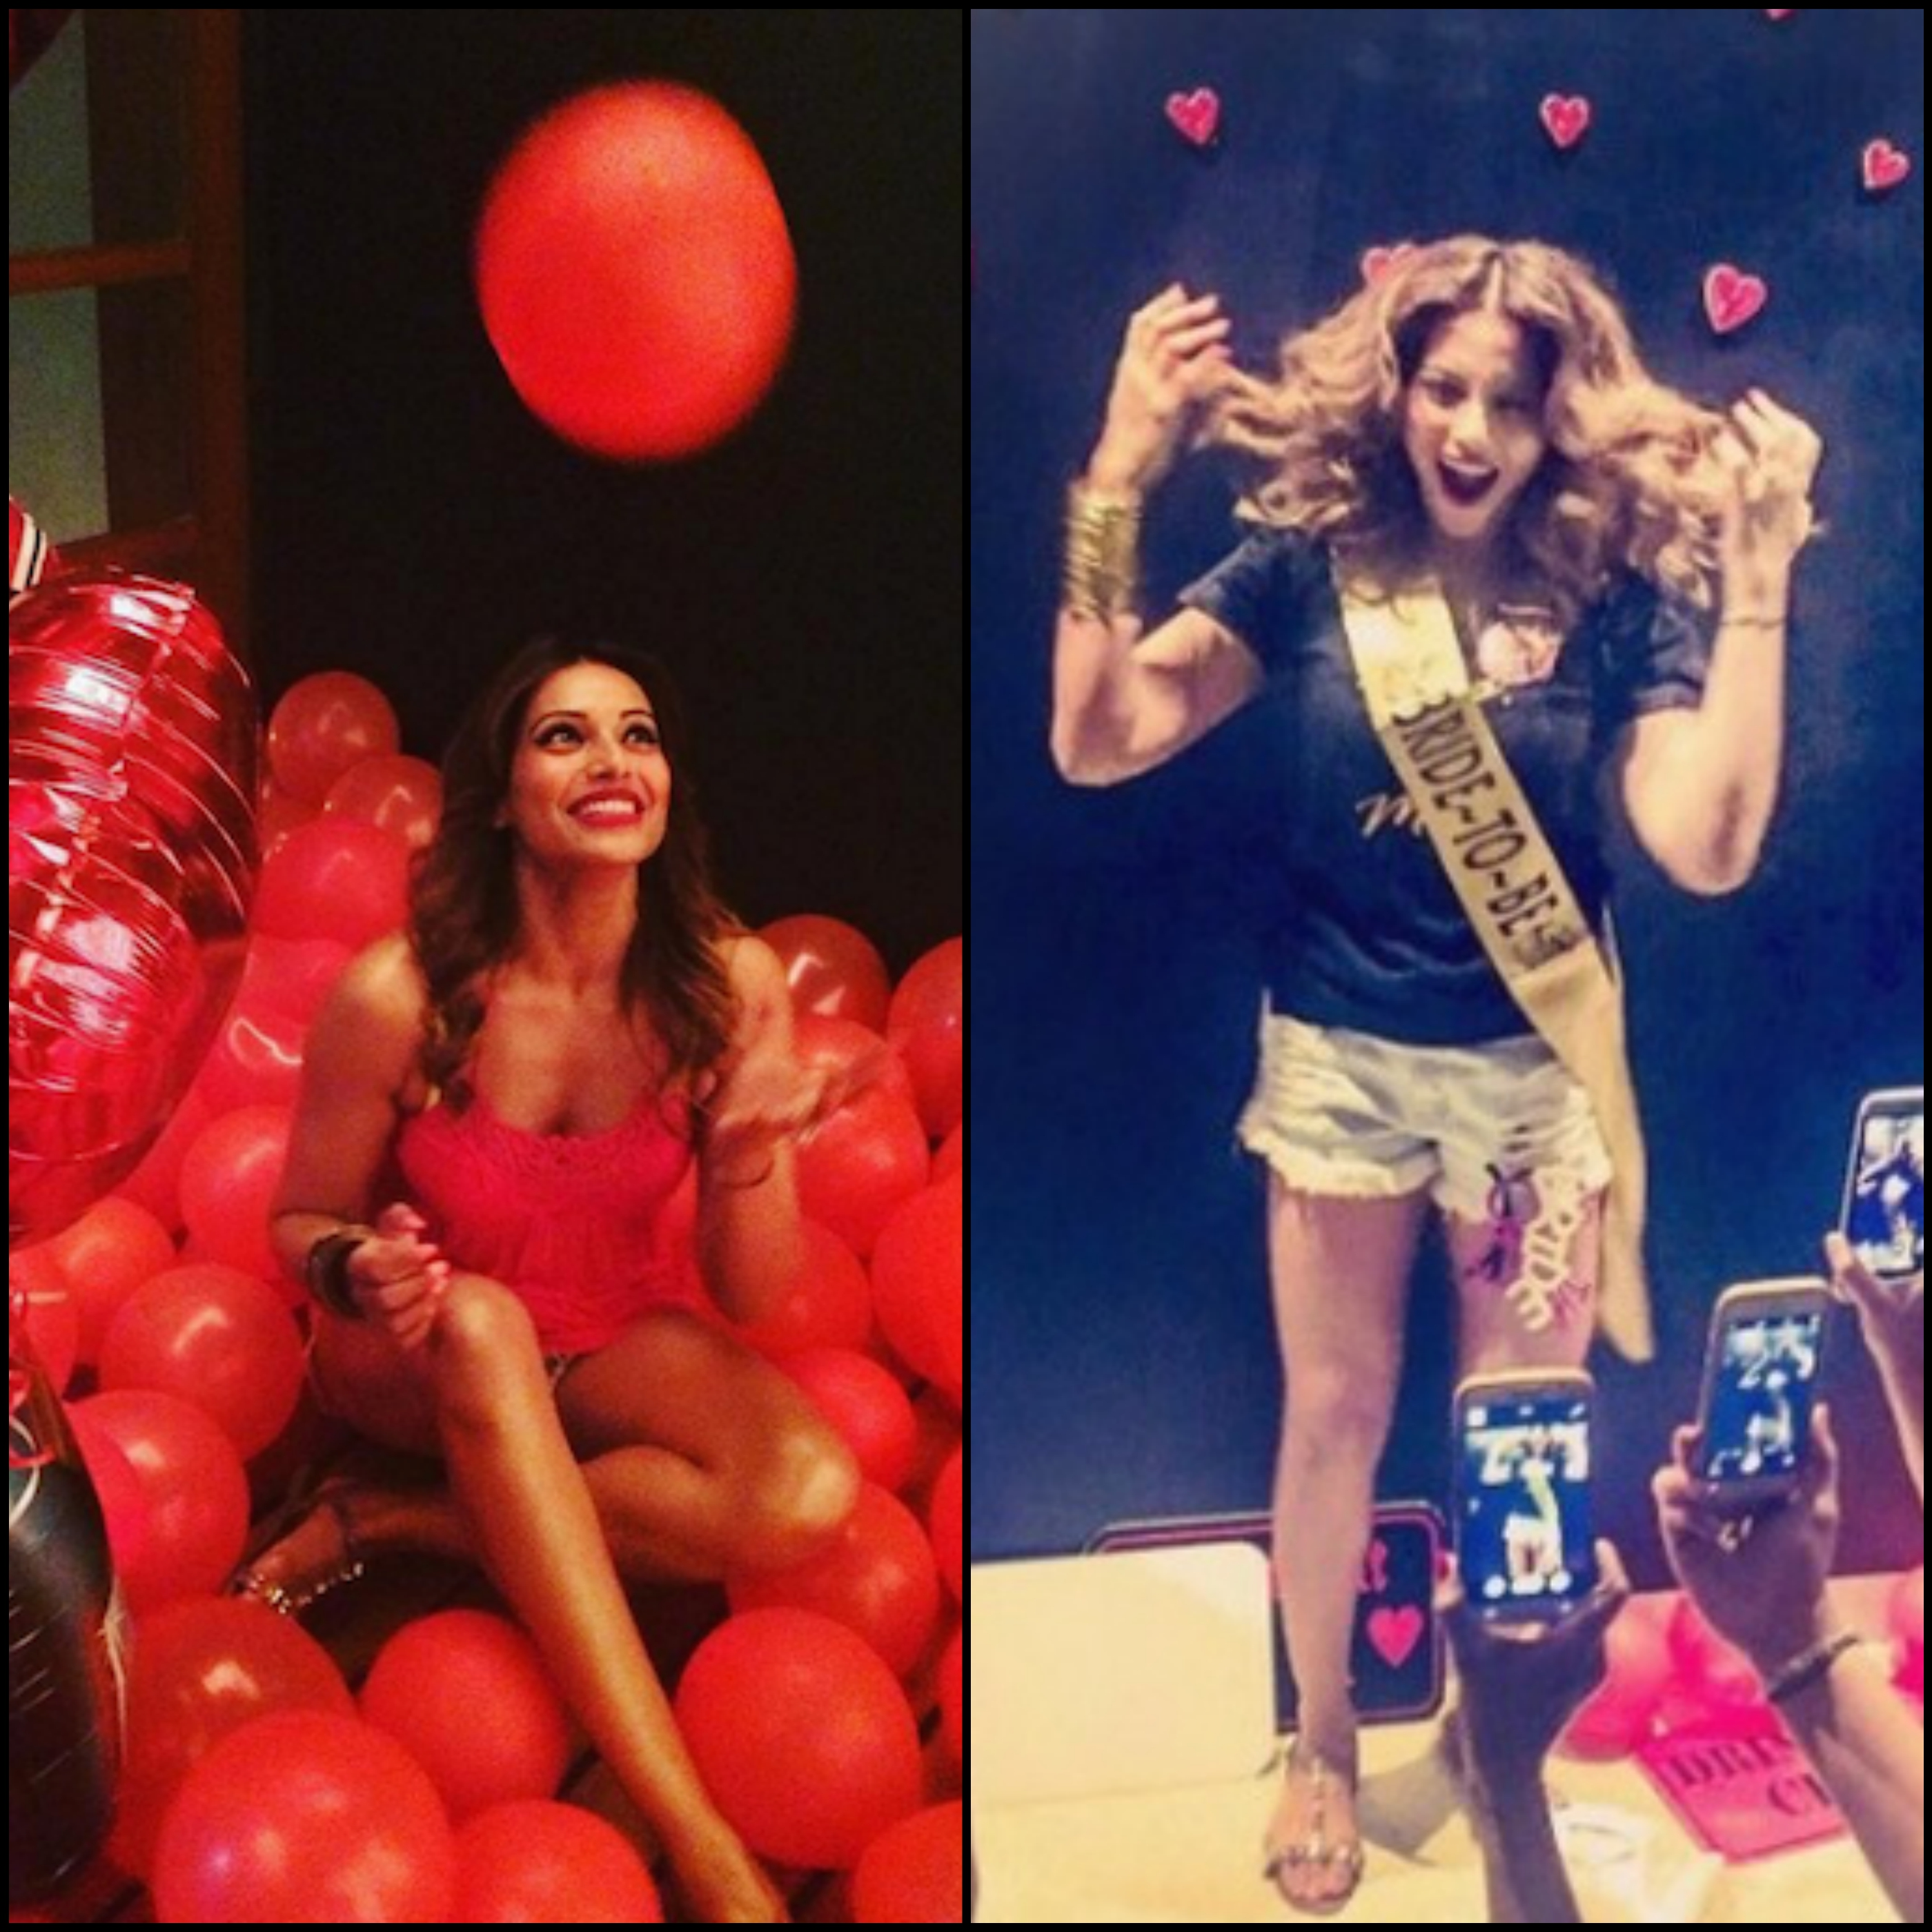 Balloons and sashes always work! Incorporate them in your plans just like Bipasha Basu did